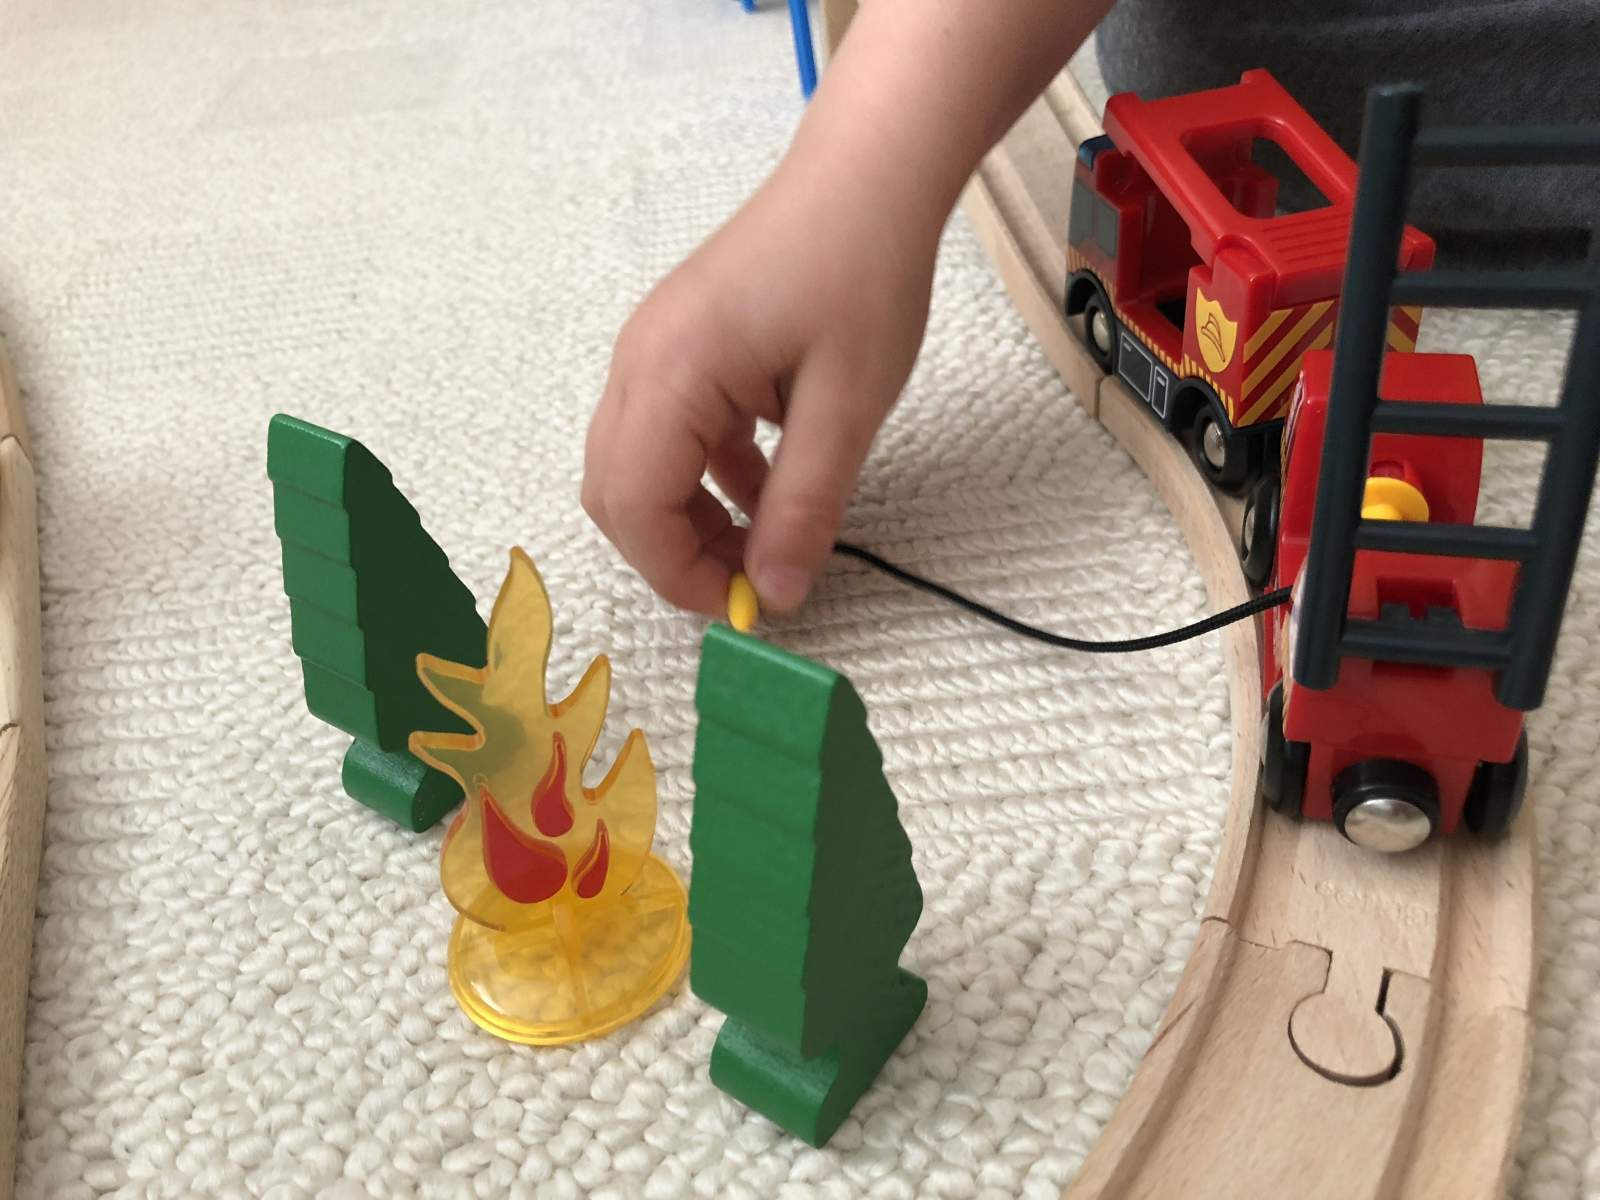 putting out the fire in the BRIO trees fire engine toy